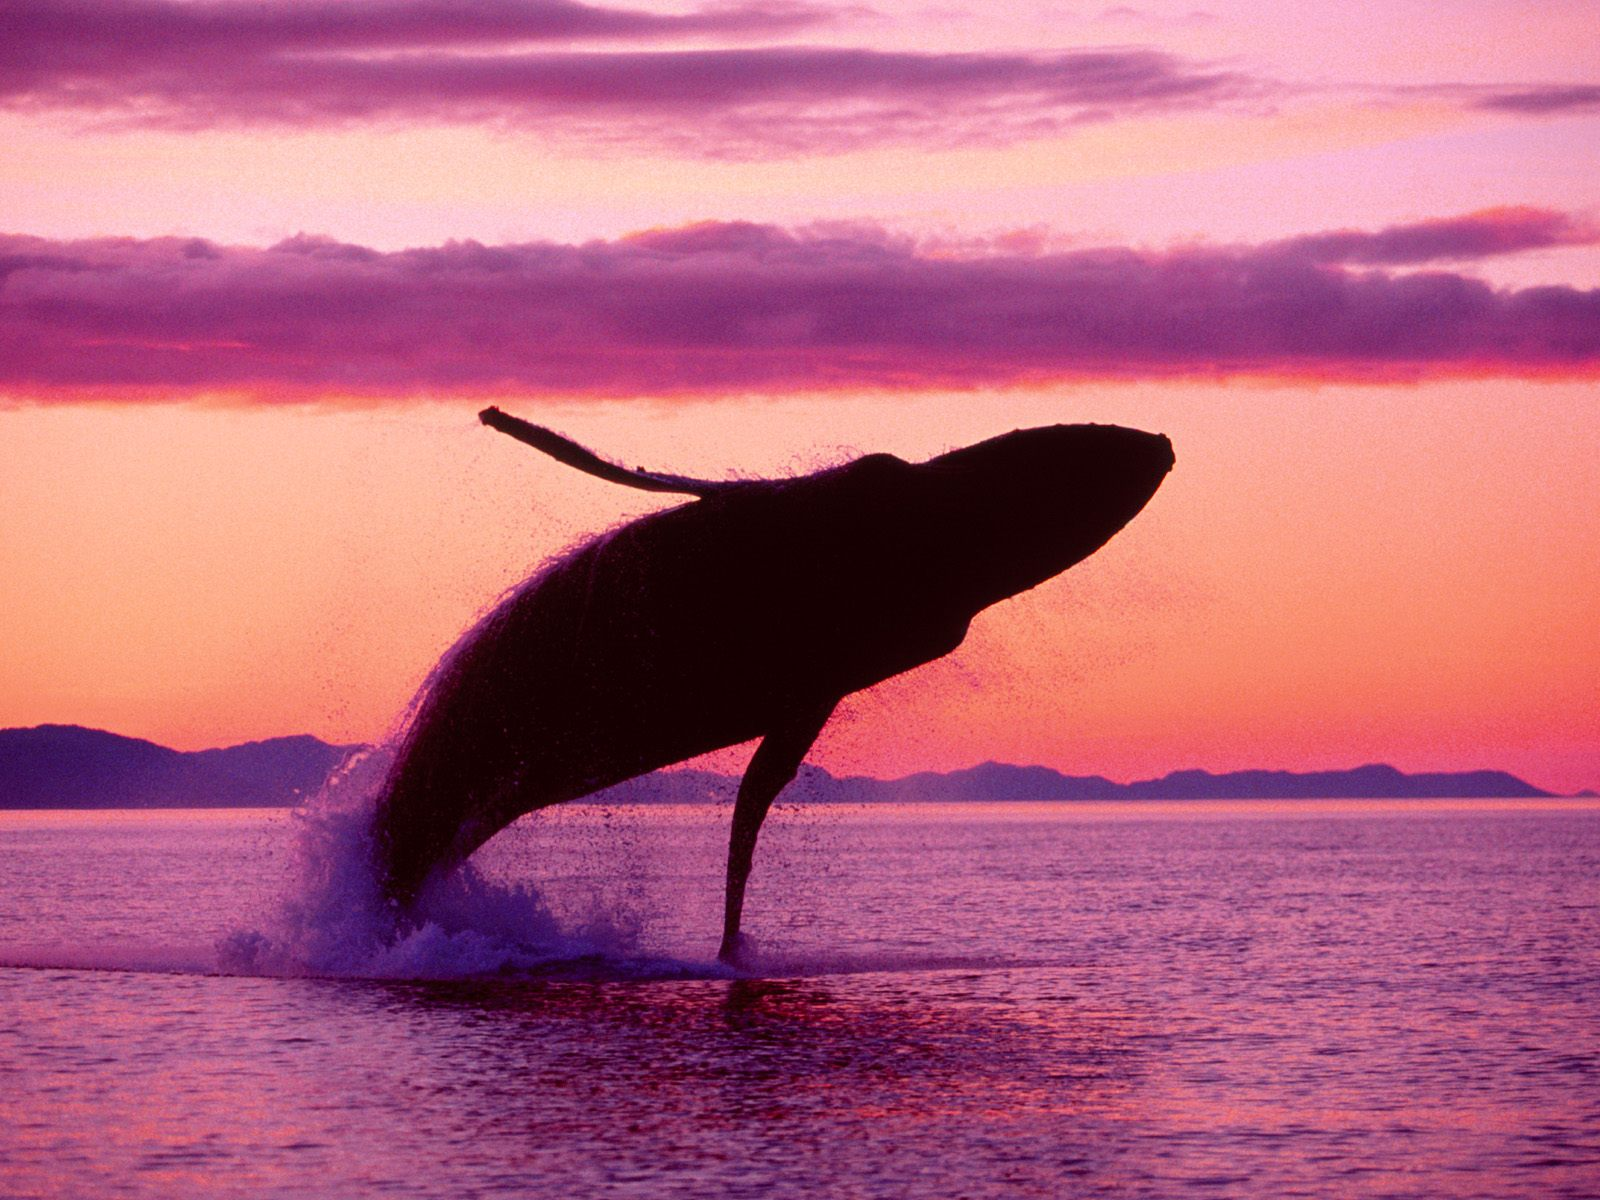 Best 26 Whale Backgrounds on HipWallpaper Whale Wallpaper 1600x1200